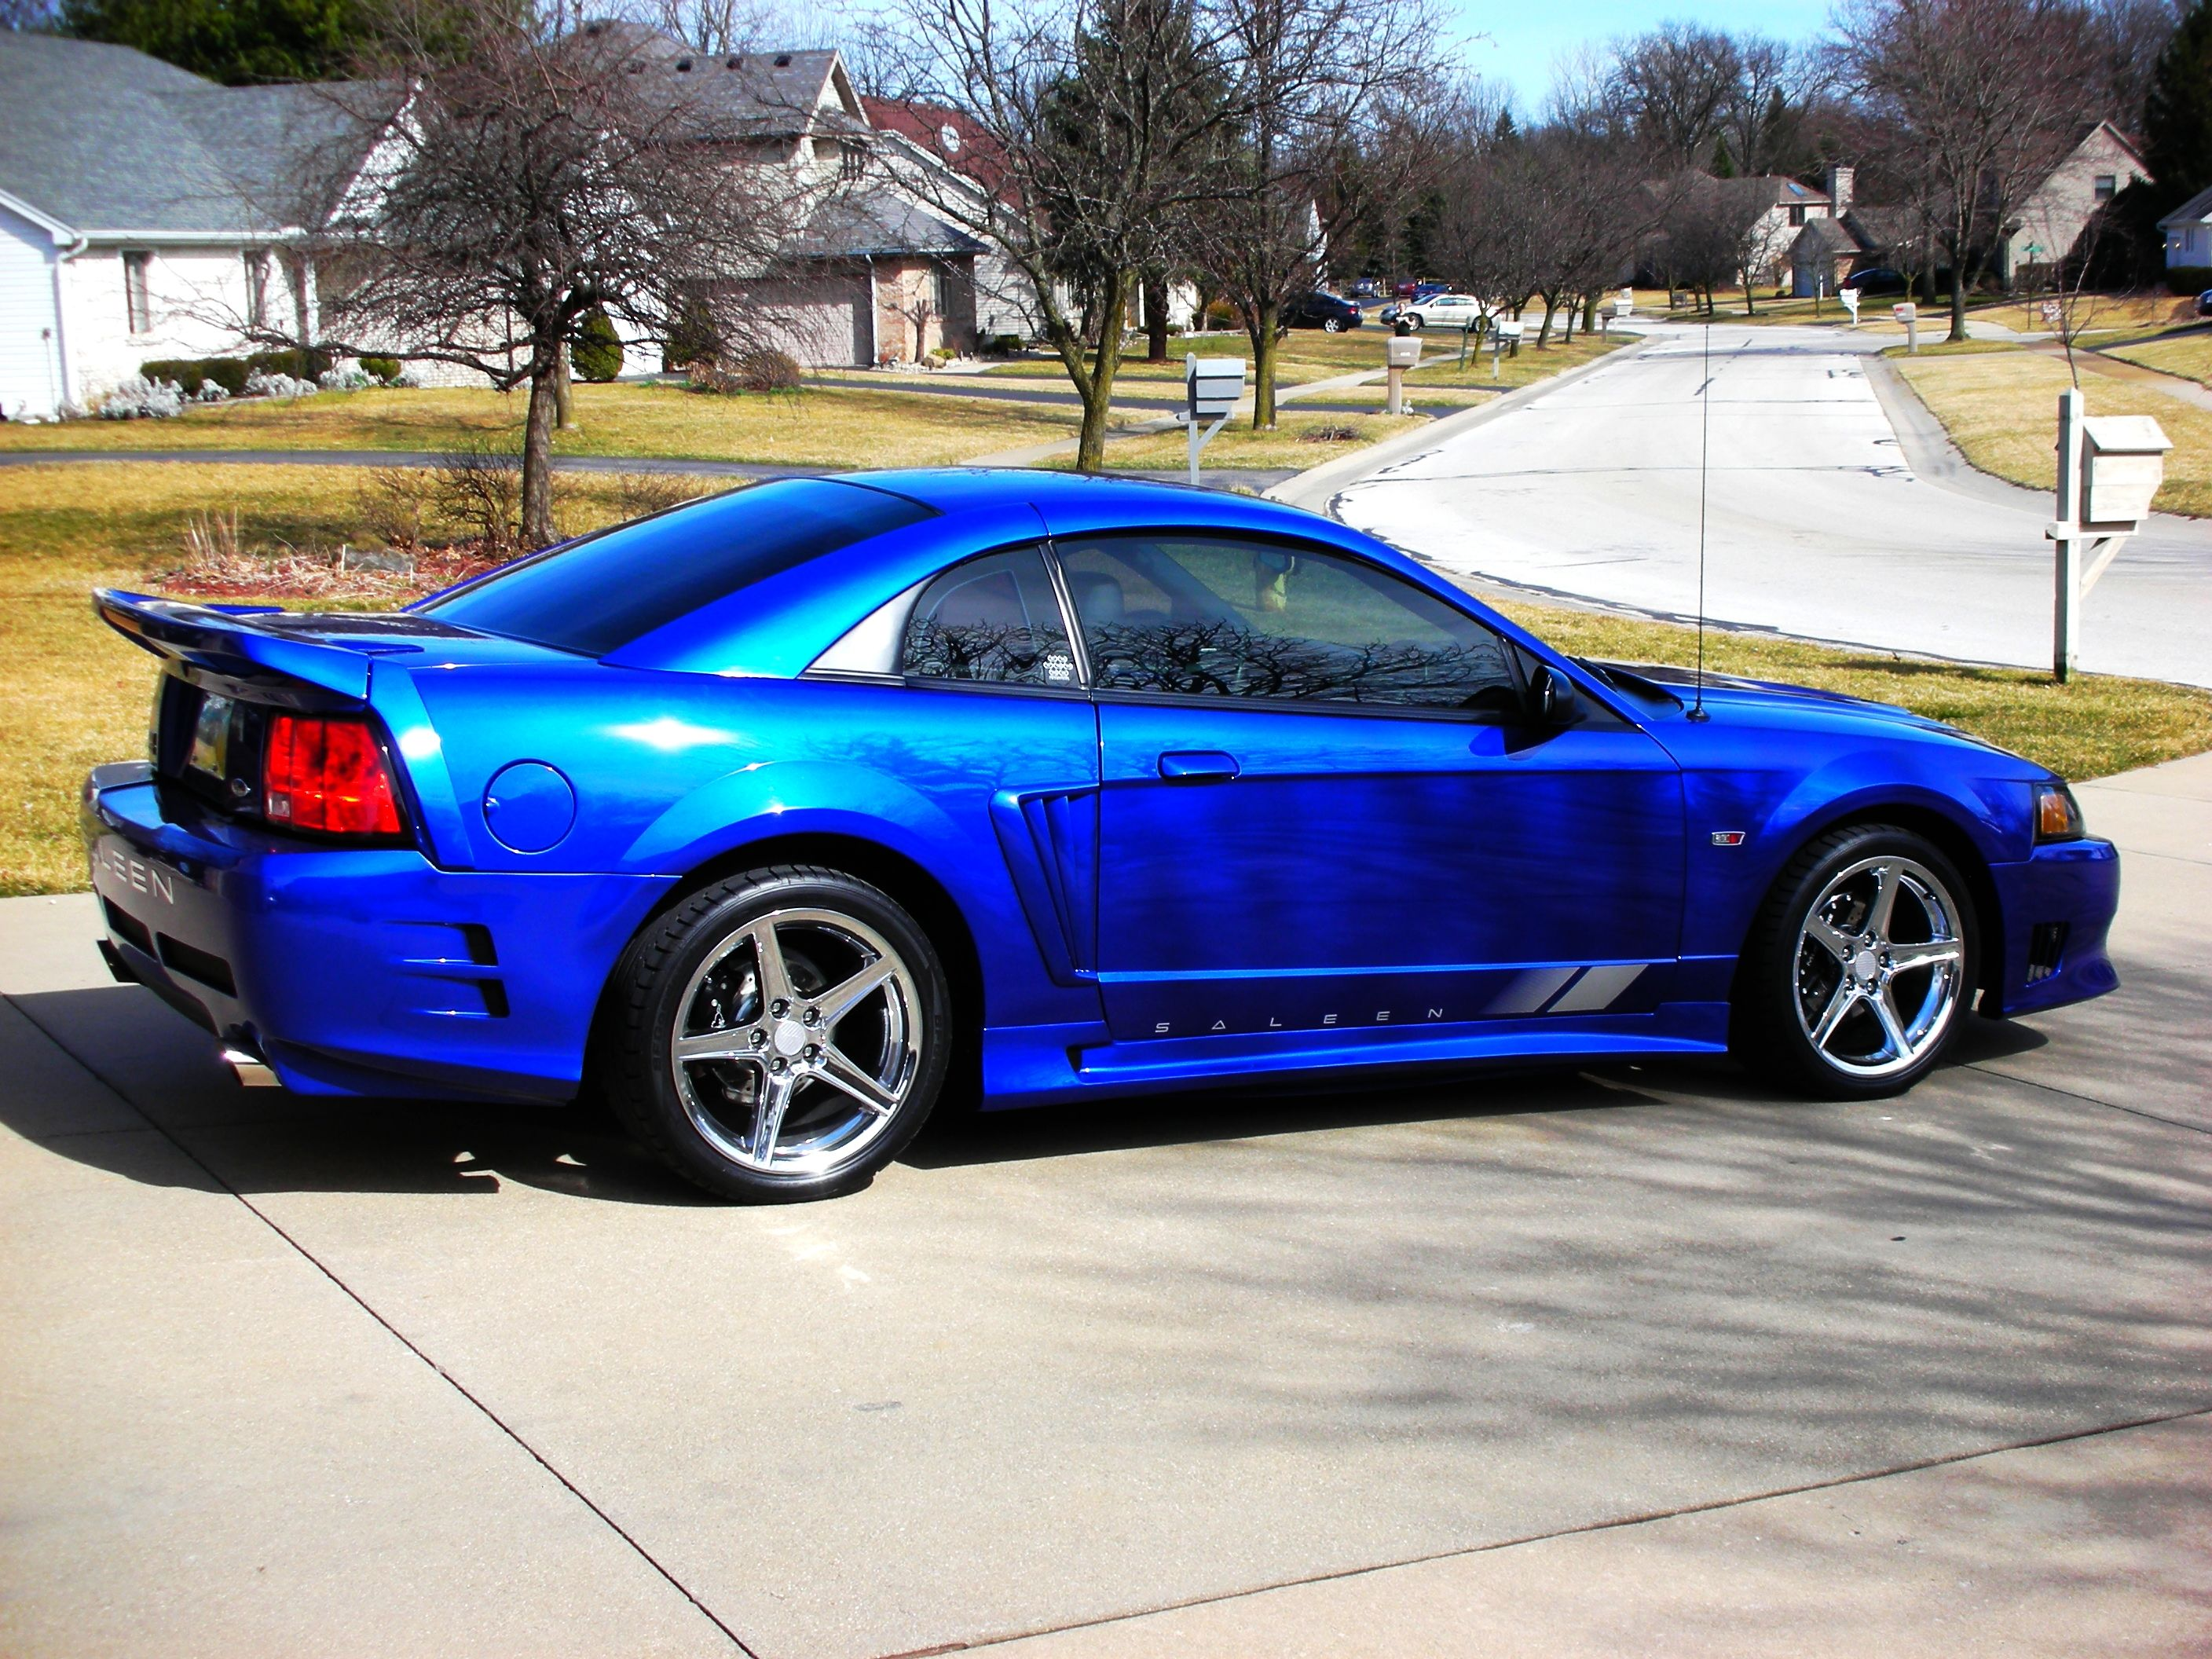 MY 2003 SALEEN SONIC BLUE SUPERCHARGED 1 OF 8 170  MY PINS